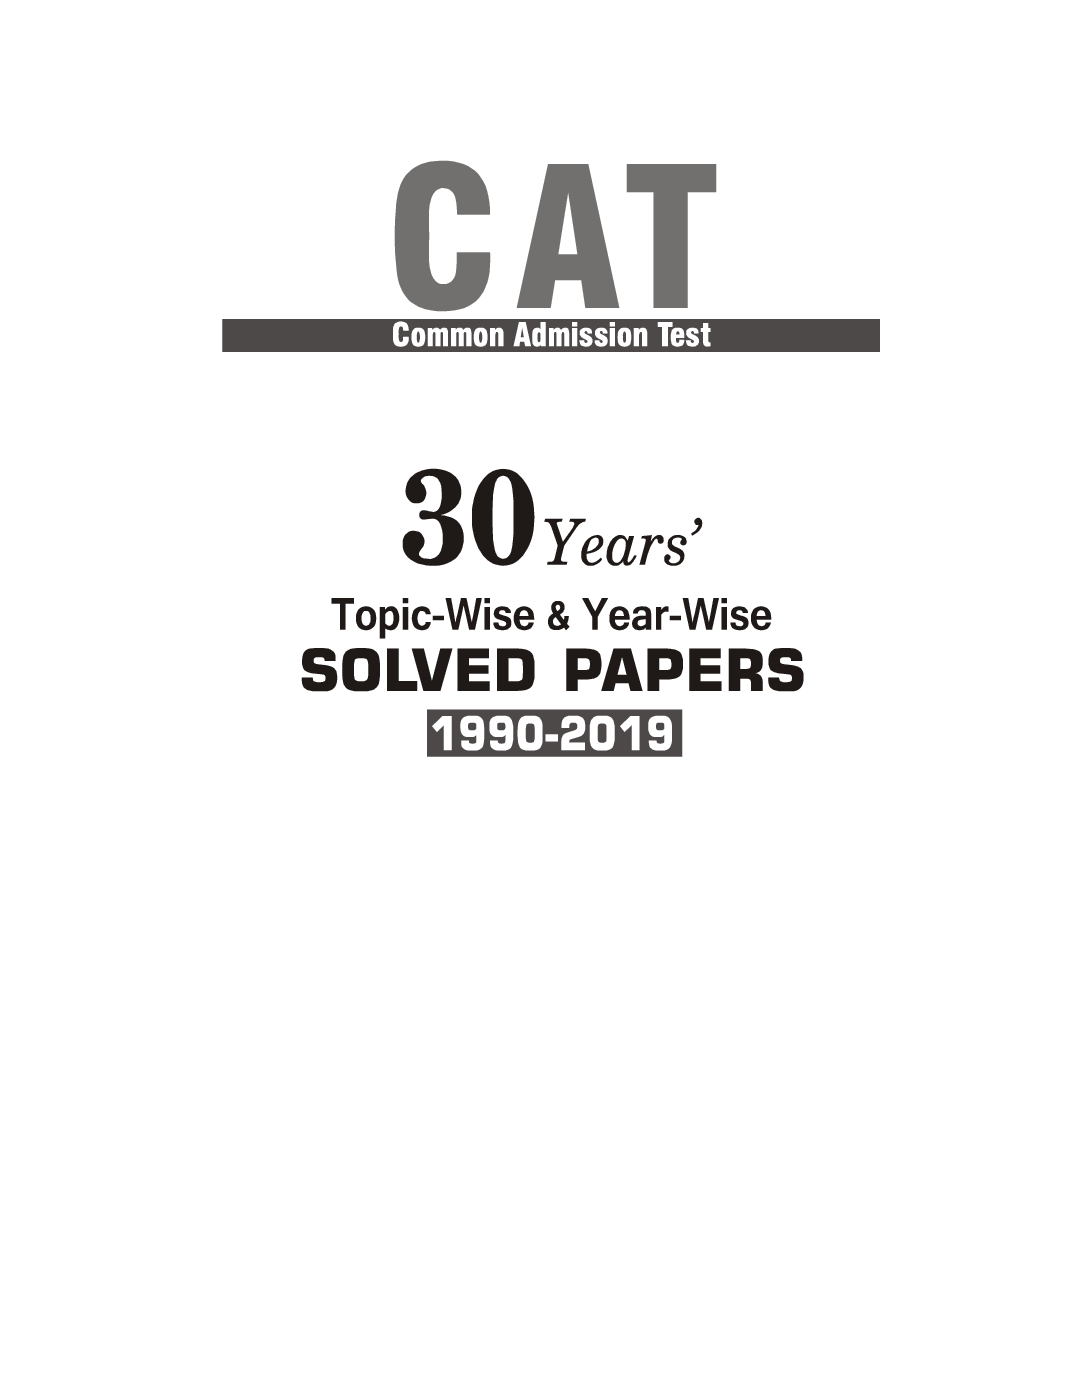 CAT 2020 30 Years Topic-Wise & Year-Wise Solved Papers 1990-2019 - Page 2